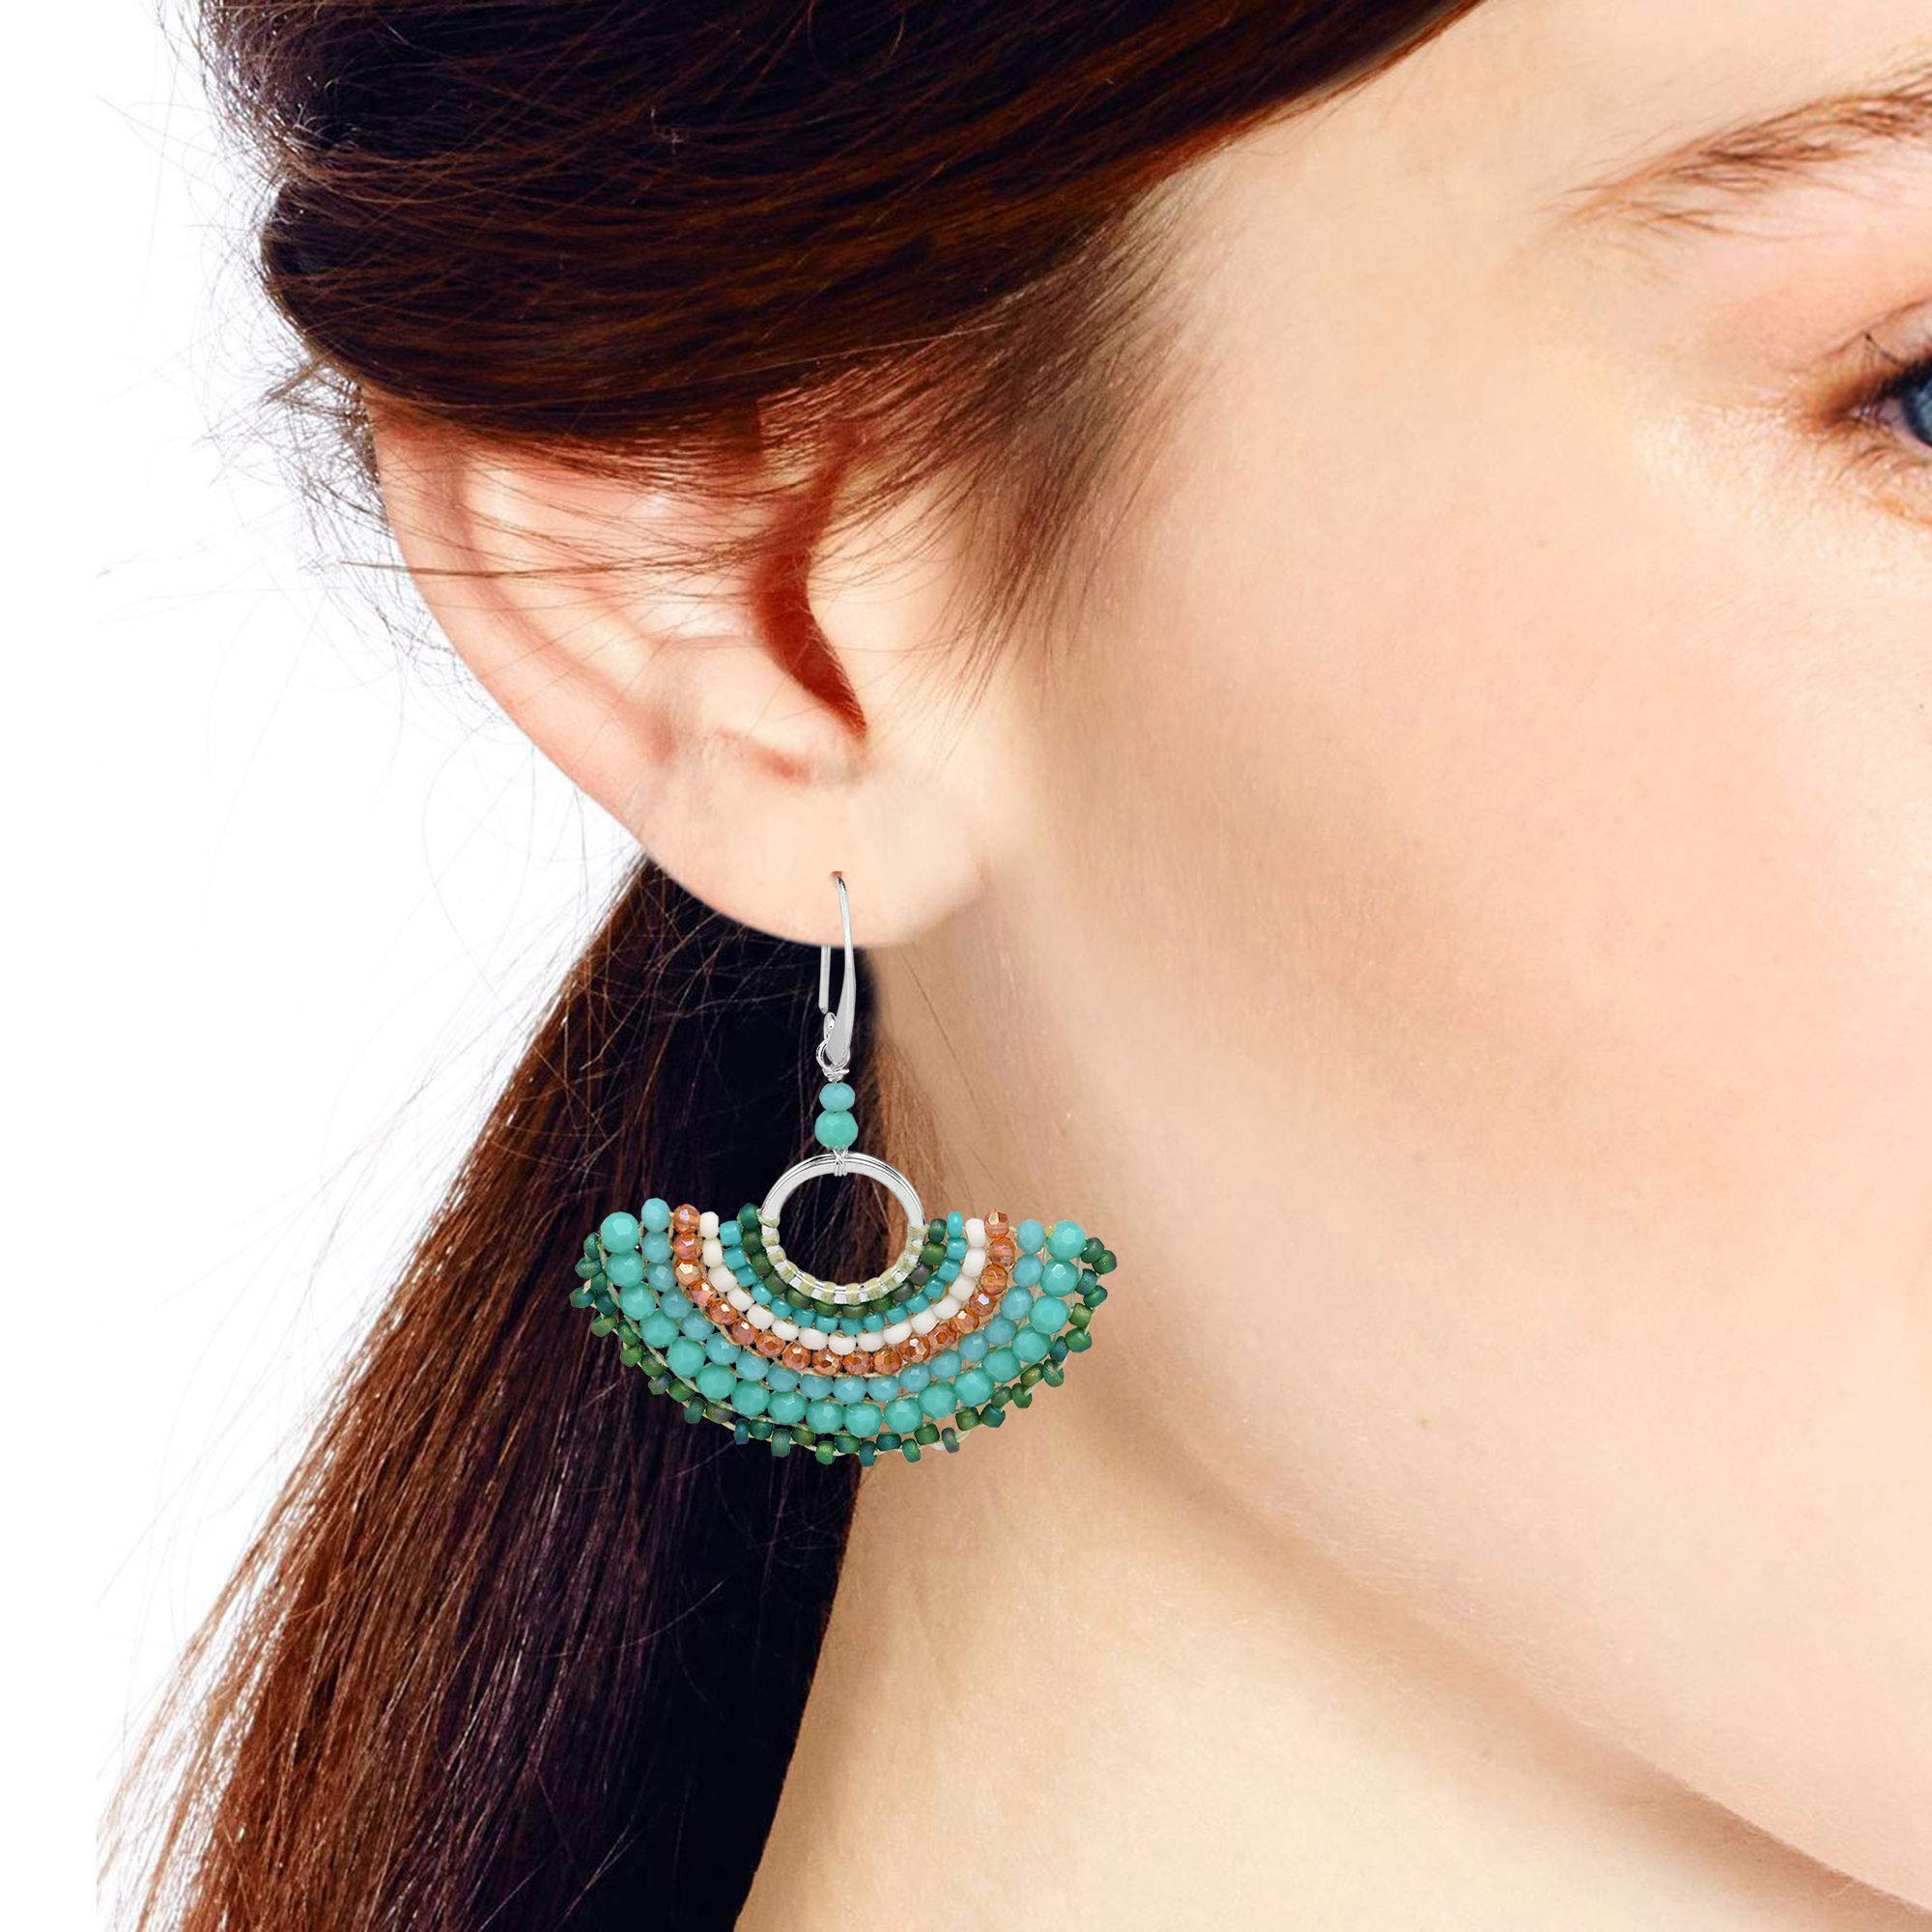 Chic Simulated Turquoise & Fashion Crystal & Fashion Bead Fan .925 Sterling Silver Dangle Earrings by AeraVida (Image #4)